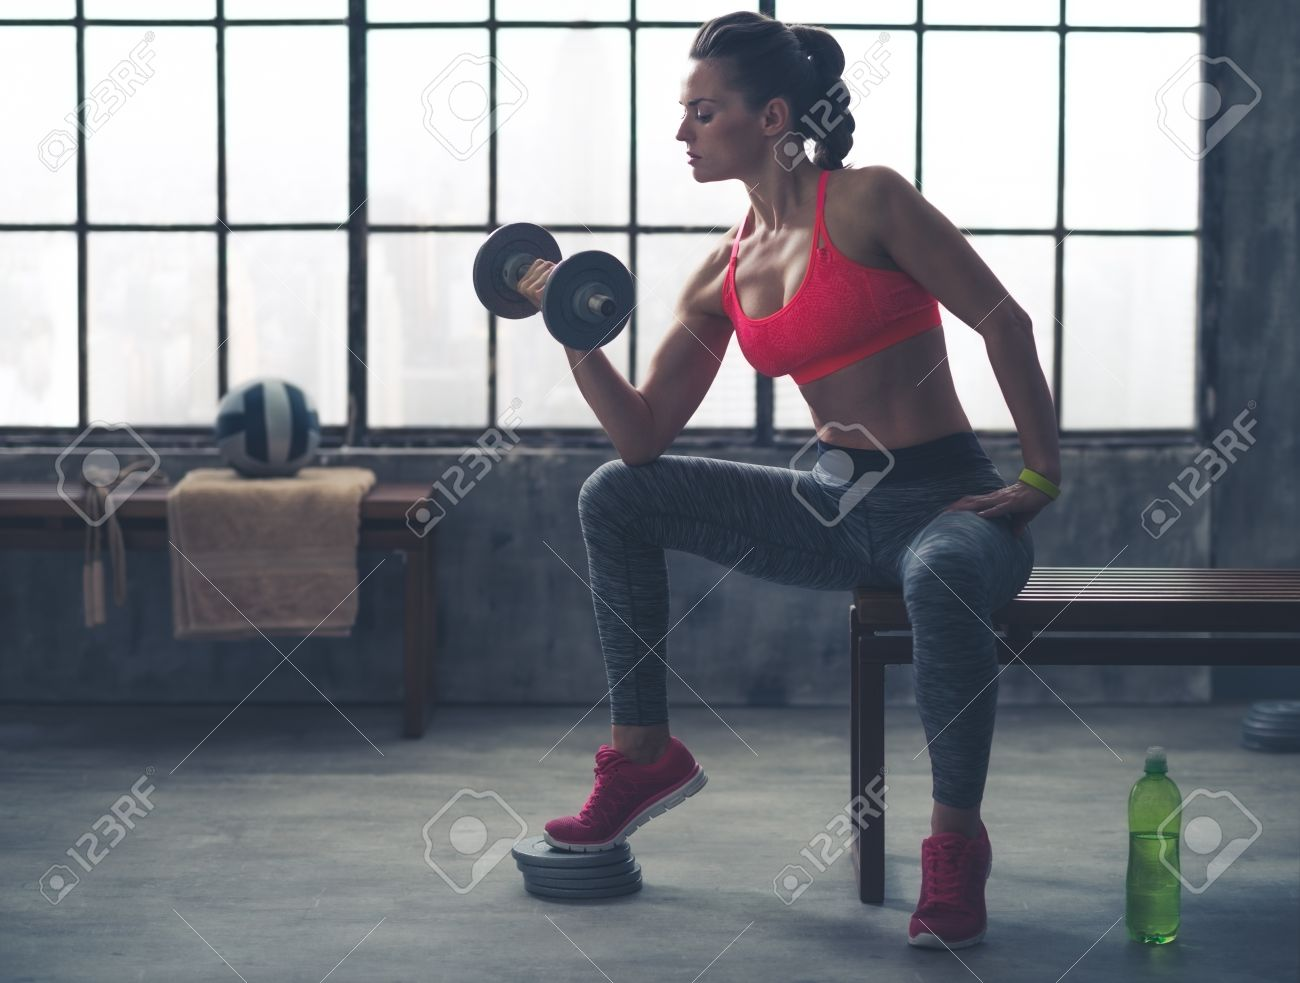 Feel that burn! A fit, sporty young woman is sitting in profile on a bench in profile, lifting weights with one hand, while resting her elbow on her knee. - 46425694